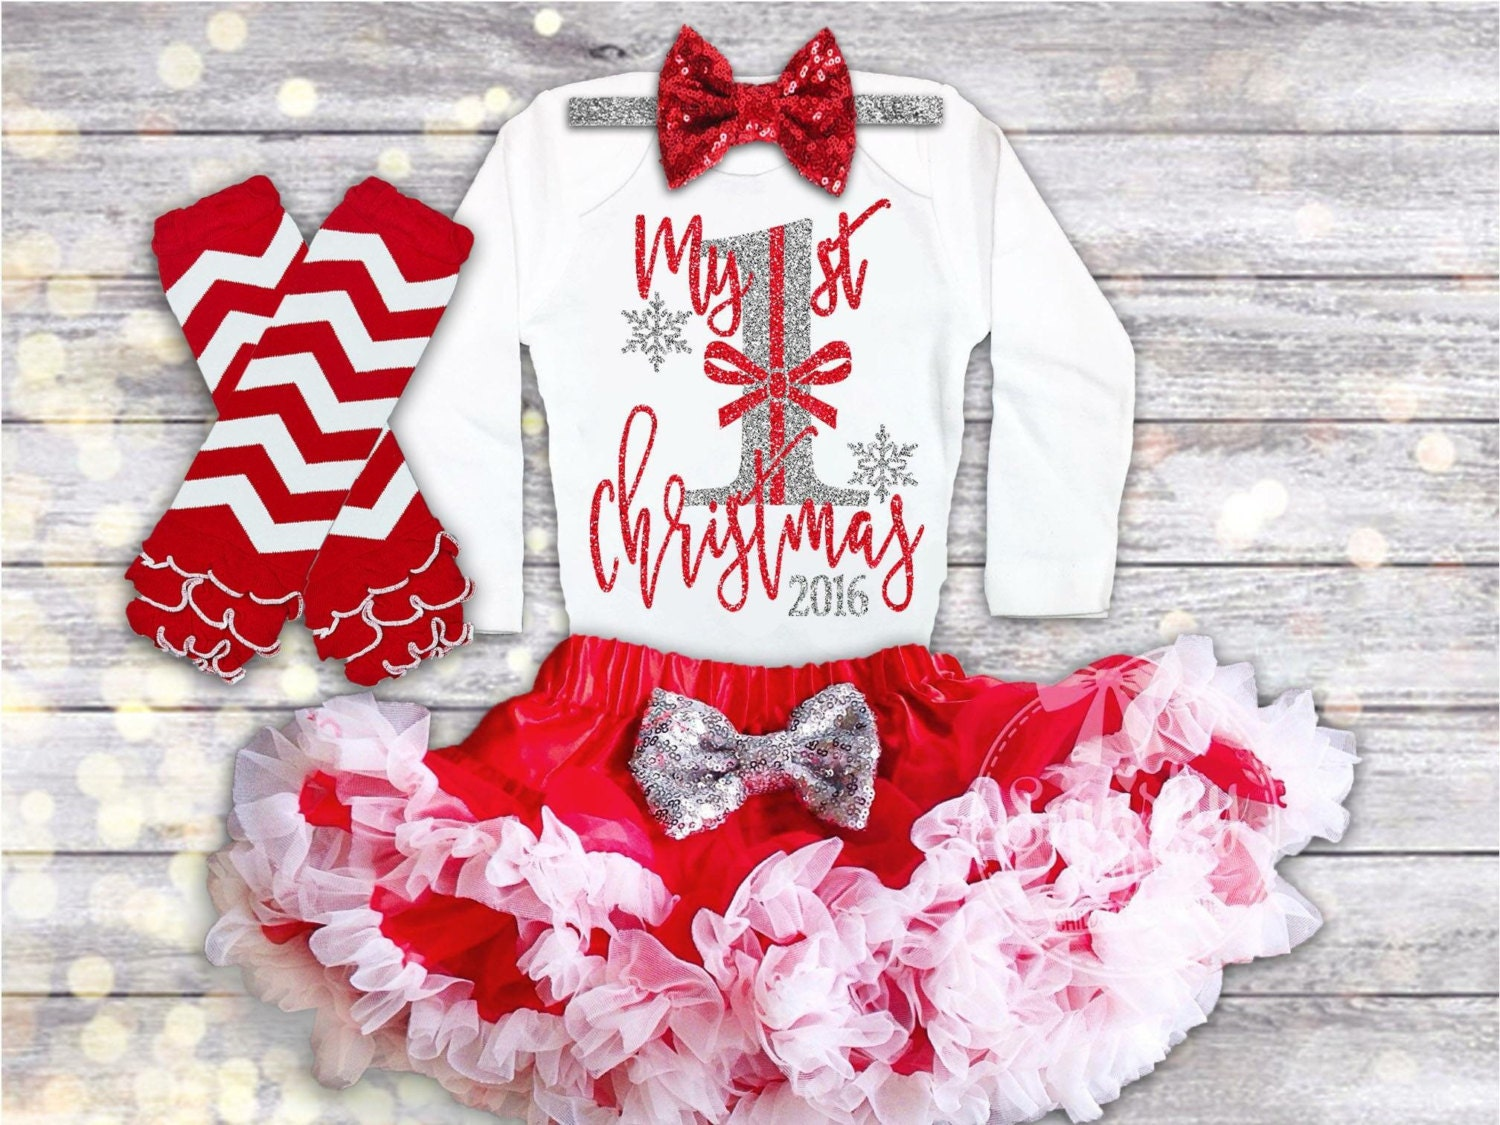 Find great deals on Baby Christmas Clothes & Accessories at Kohl's today! Disney Winnie the Pooh Baby's First Christmas Hallmark Keepsake Christmas Ornament. sale. $ Original $ Baby Girl Jumping Beans® Long Sleeve Holiday Graphic Tee. Sponsored Links.